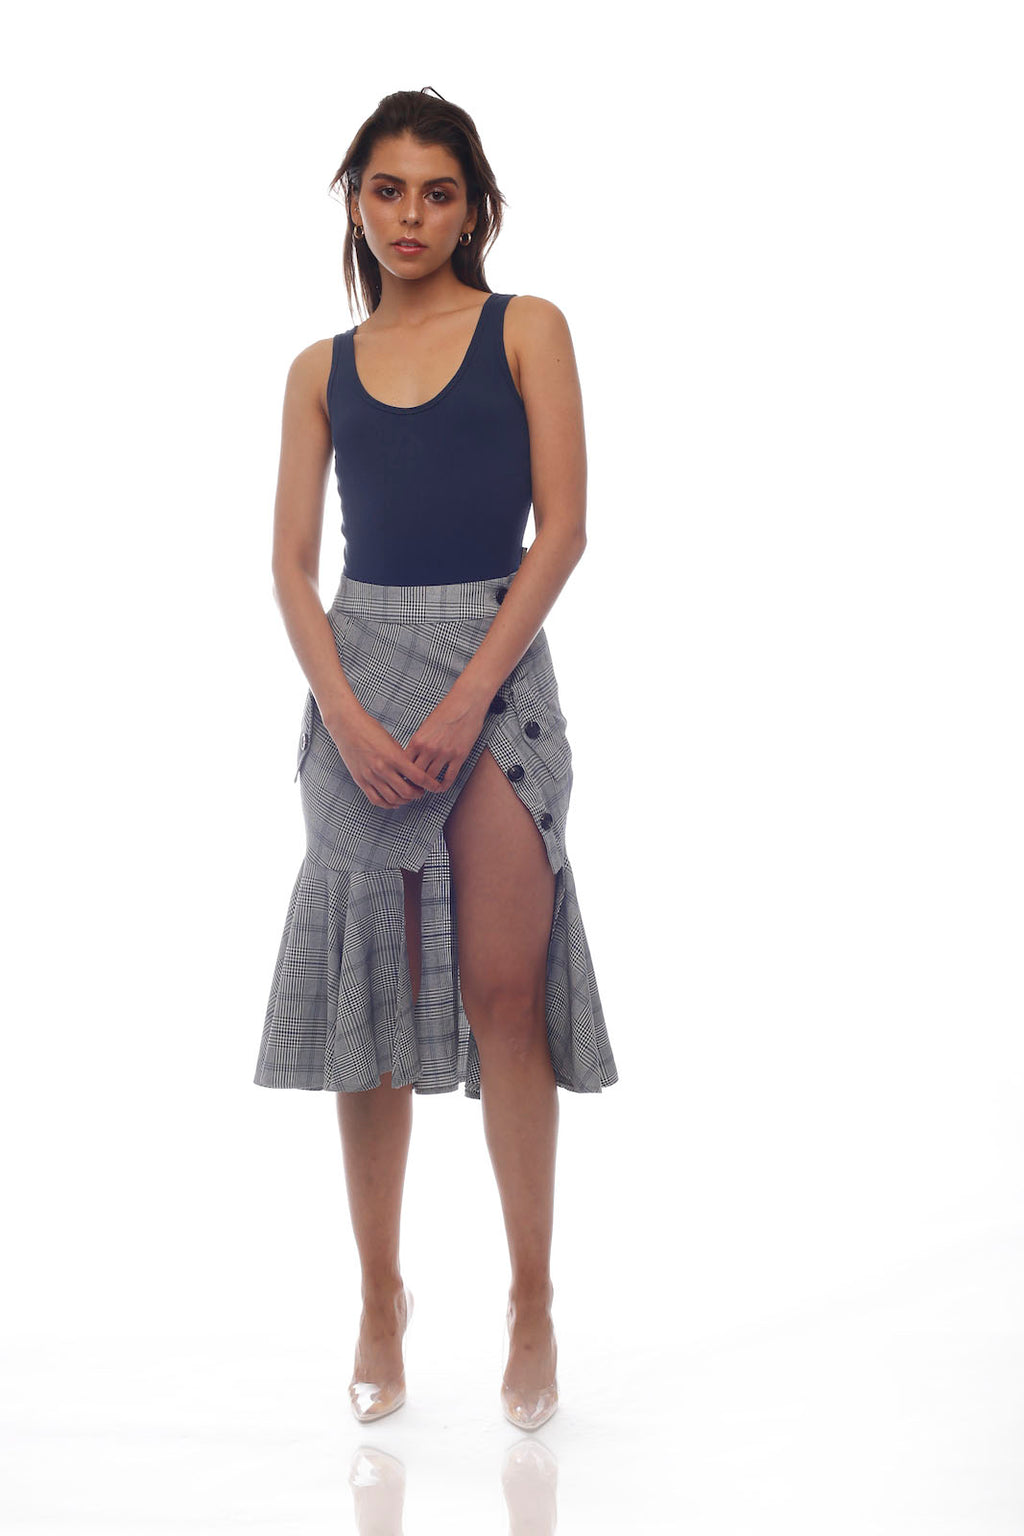 Stellar Skirt - BLUE GREY